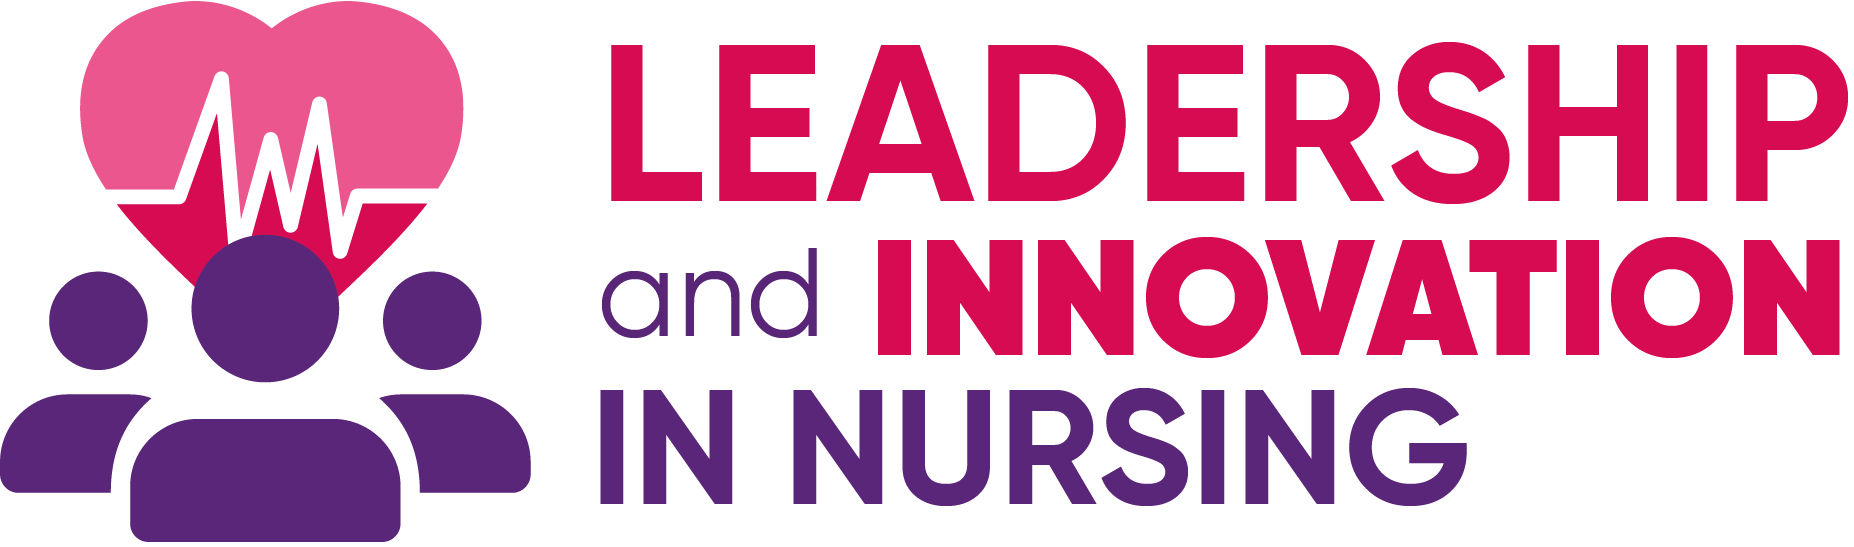 Leadership and Innovation in Nursing